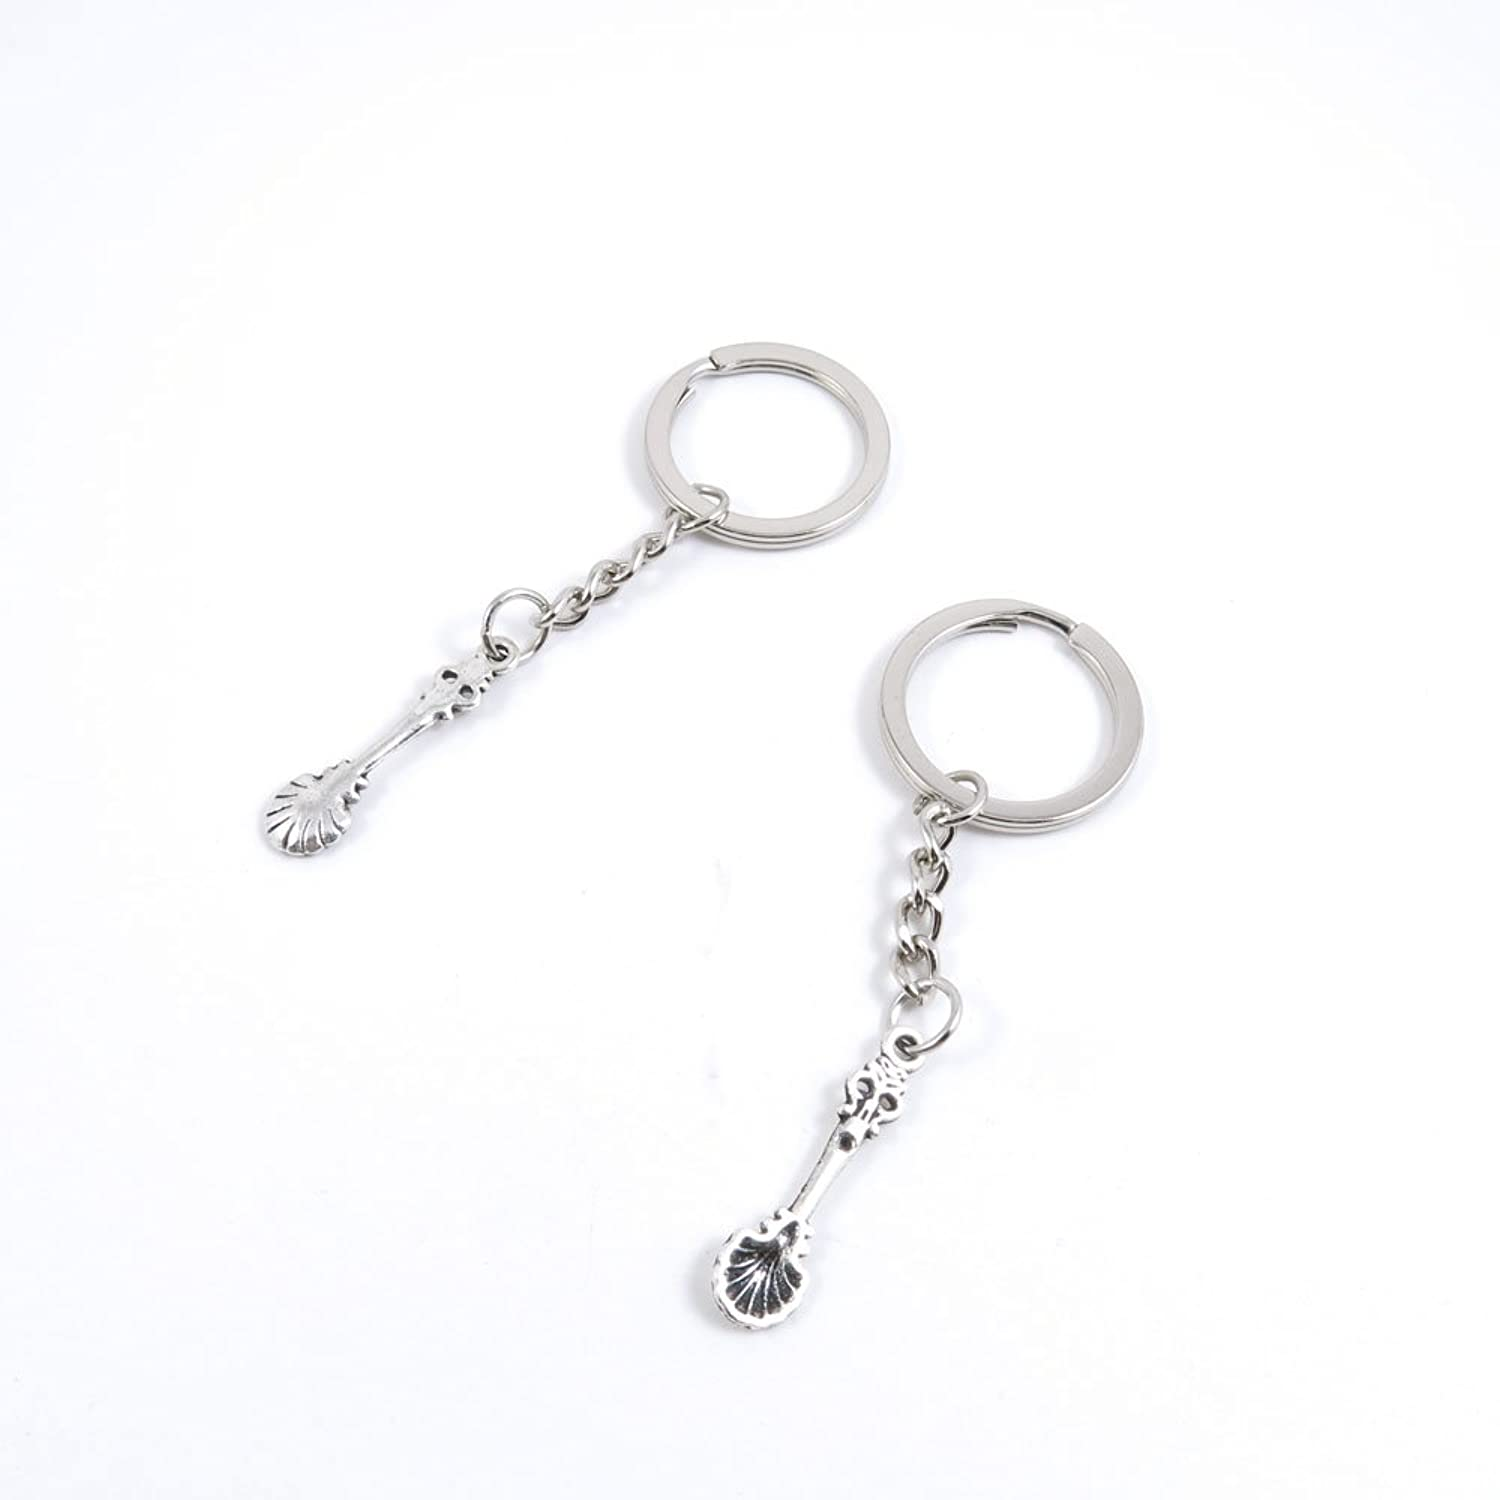 240 Pieces Fashion Jewelry Keyring Keychain Door Car Key Tag Ring Chain Supplier Supply Wholesale Bulk Lots T2TY3 Spoon Tablespoon